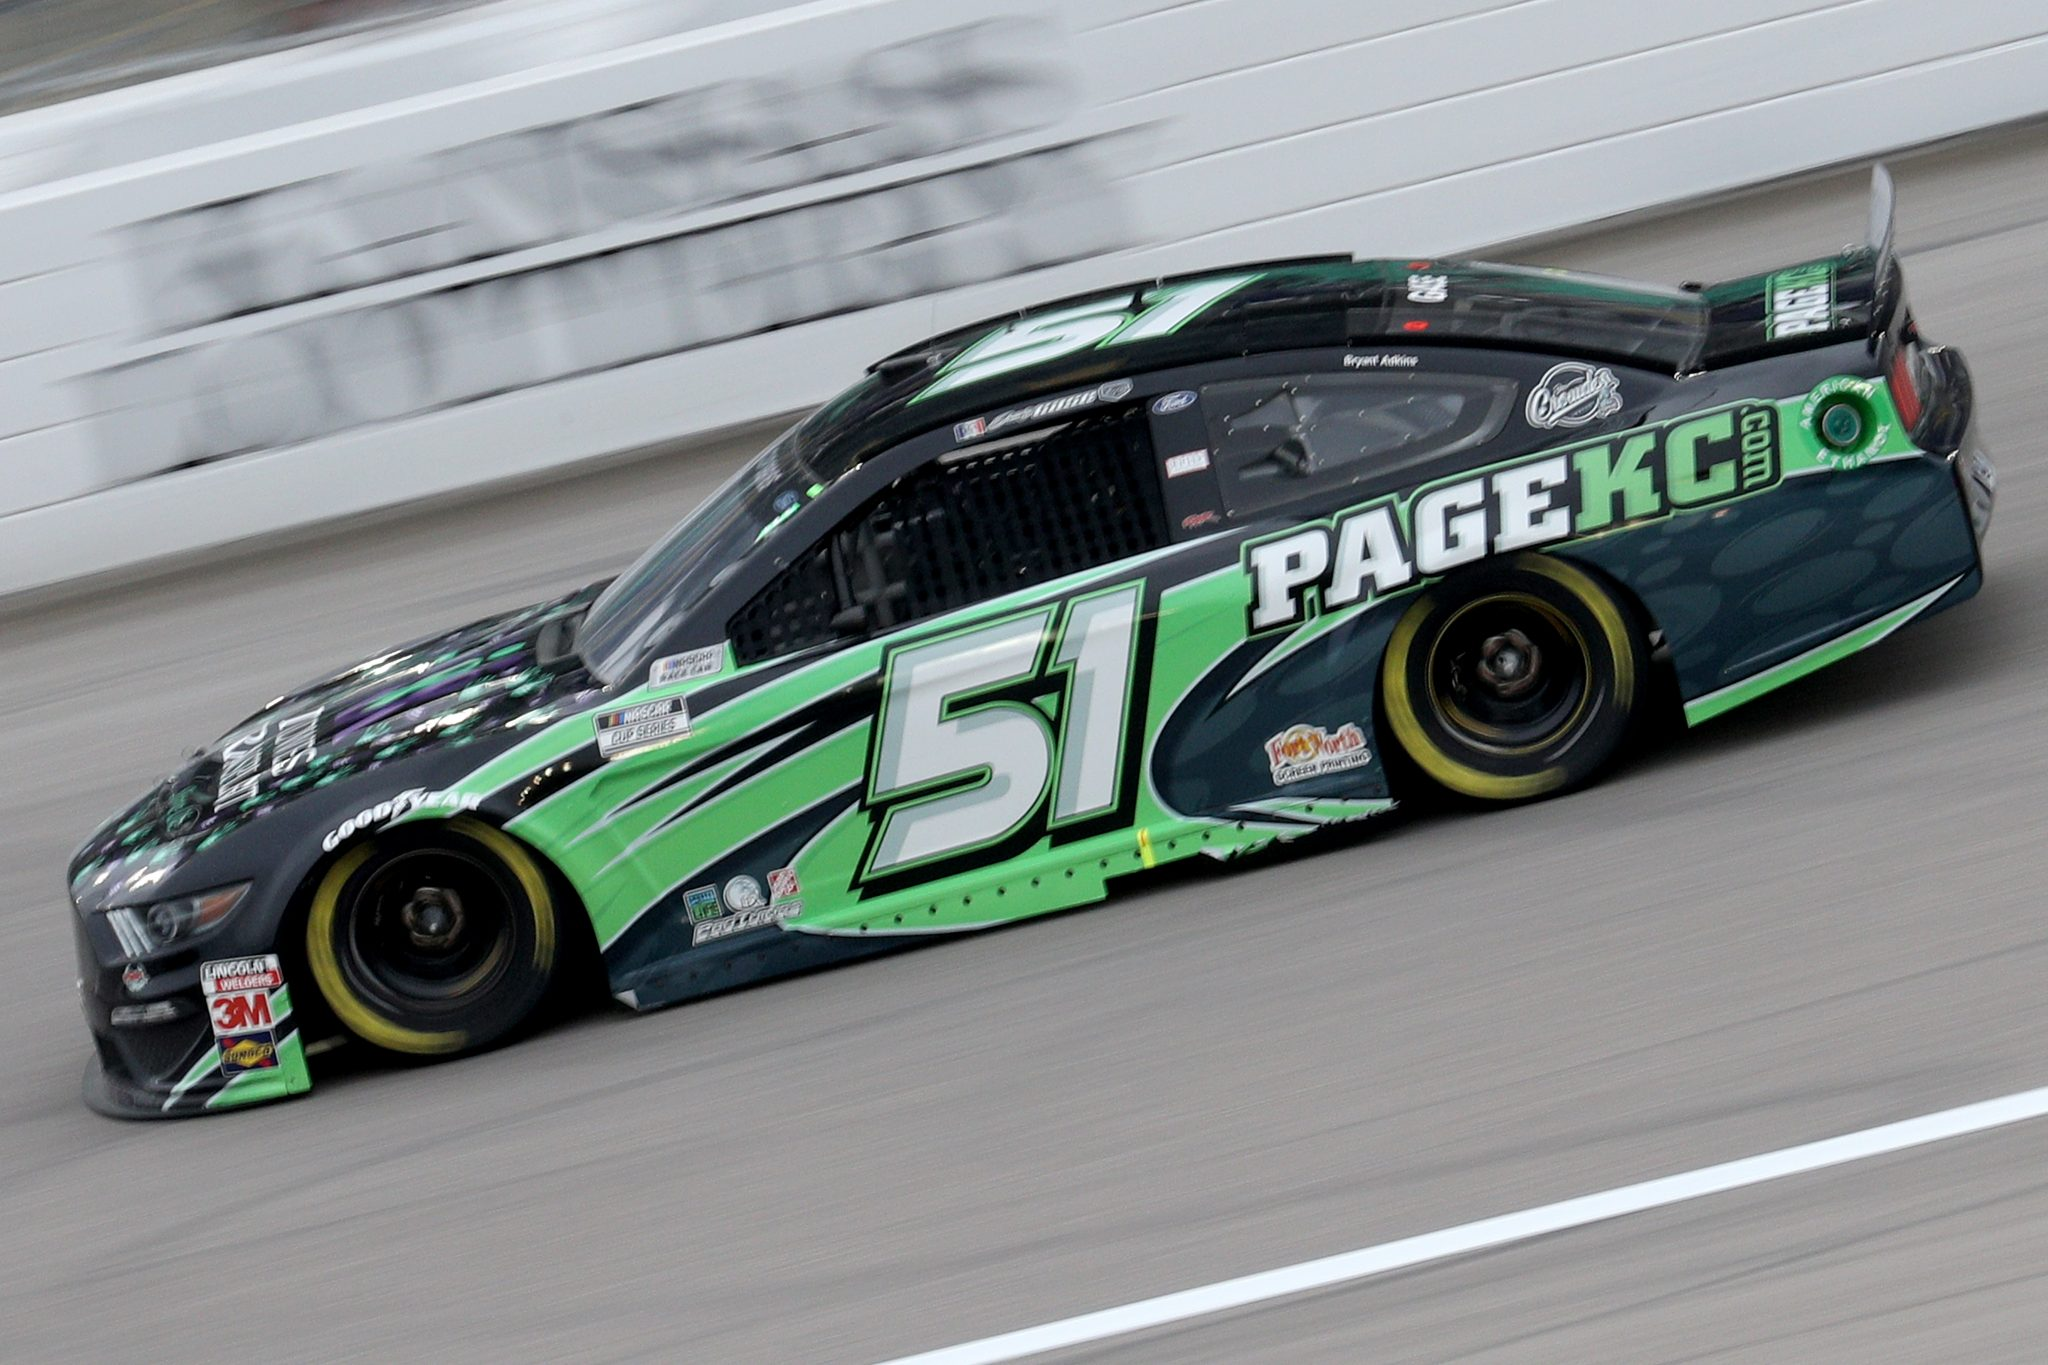 KANSAS CITY, KANSAS - OCTOBER 18: Joey Gase, driver of the #51 Ford, drives during the NASCAR Cup Series Hollywood Casino 400 at Kansas Speedway on October 18, 2020 in Kansas City, Kansas. (Photo by Chris Graythen/Getty Images) | Getty Images